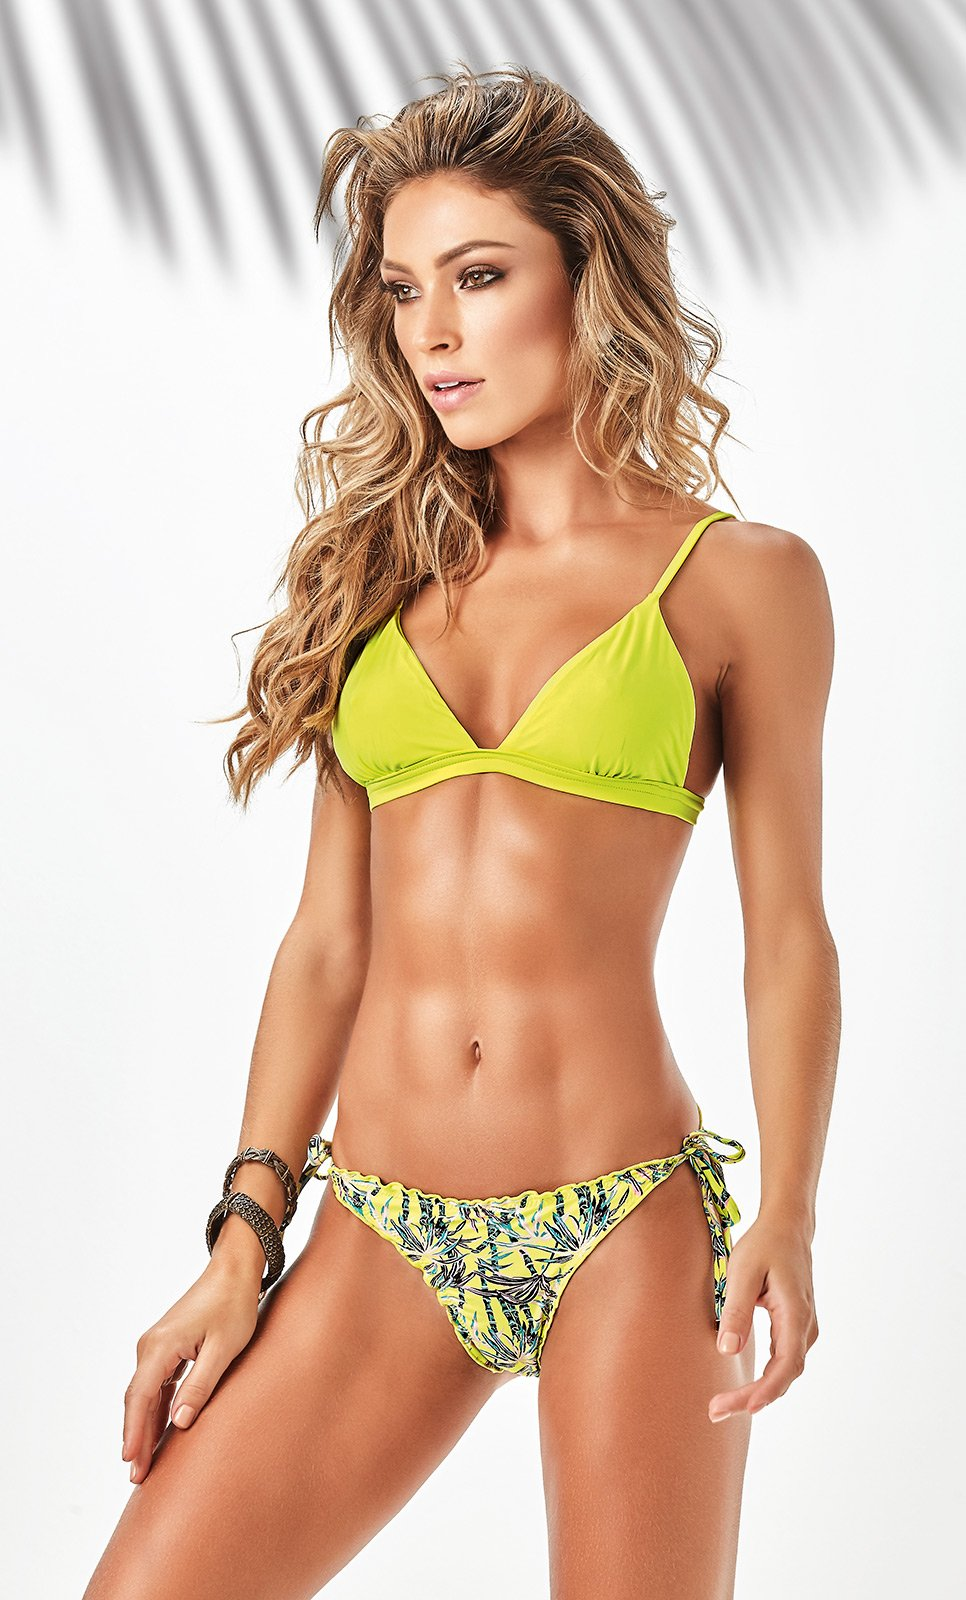 Become the epitome of beach beauty with Molly Brown's resort wear, cover ups & high-end swimwear brands! Purchase designer swimsuits that accent your beauty.